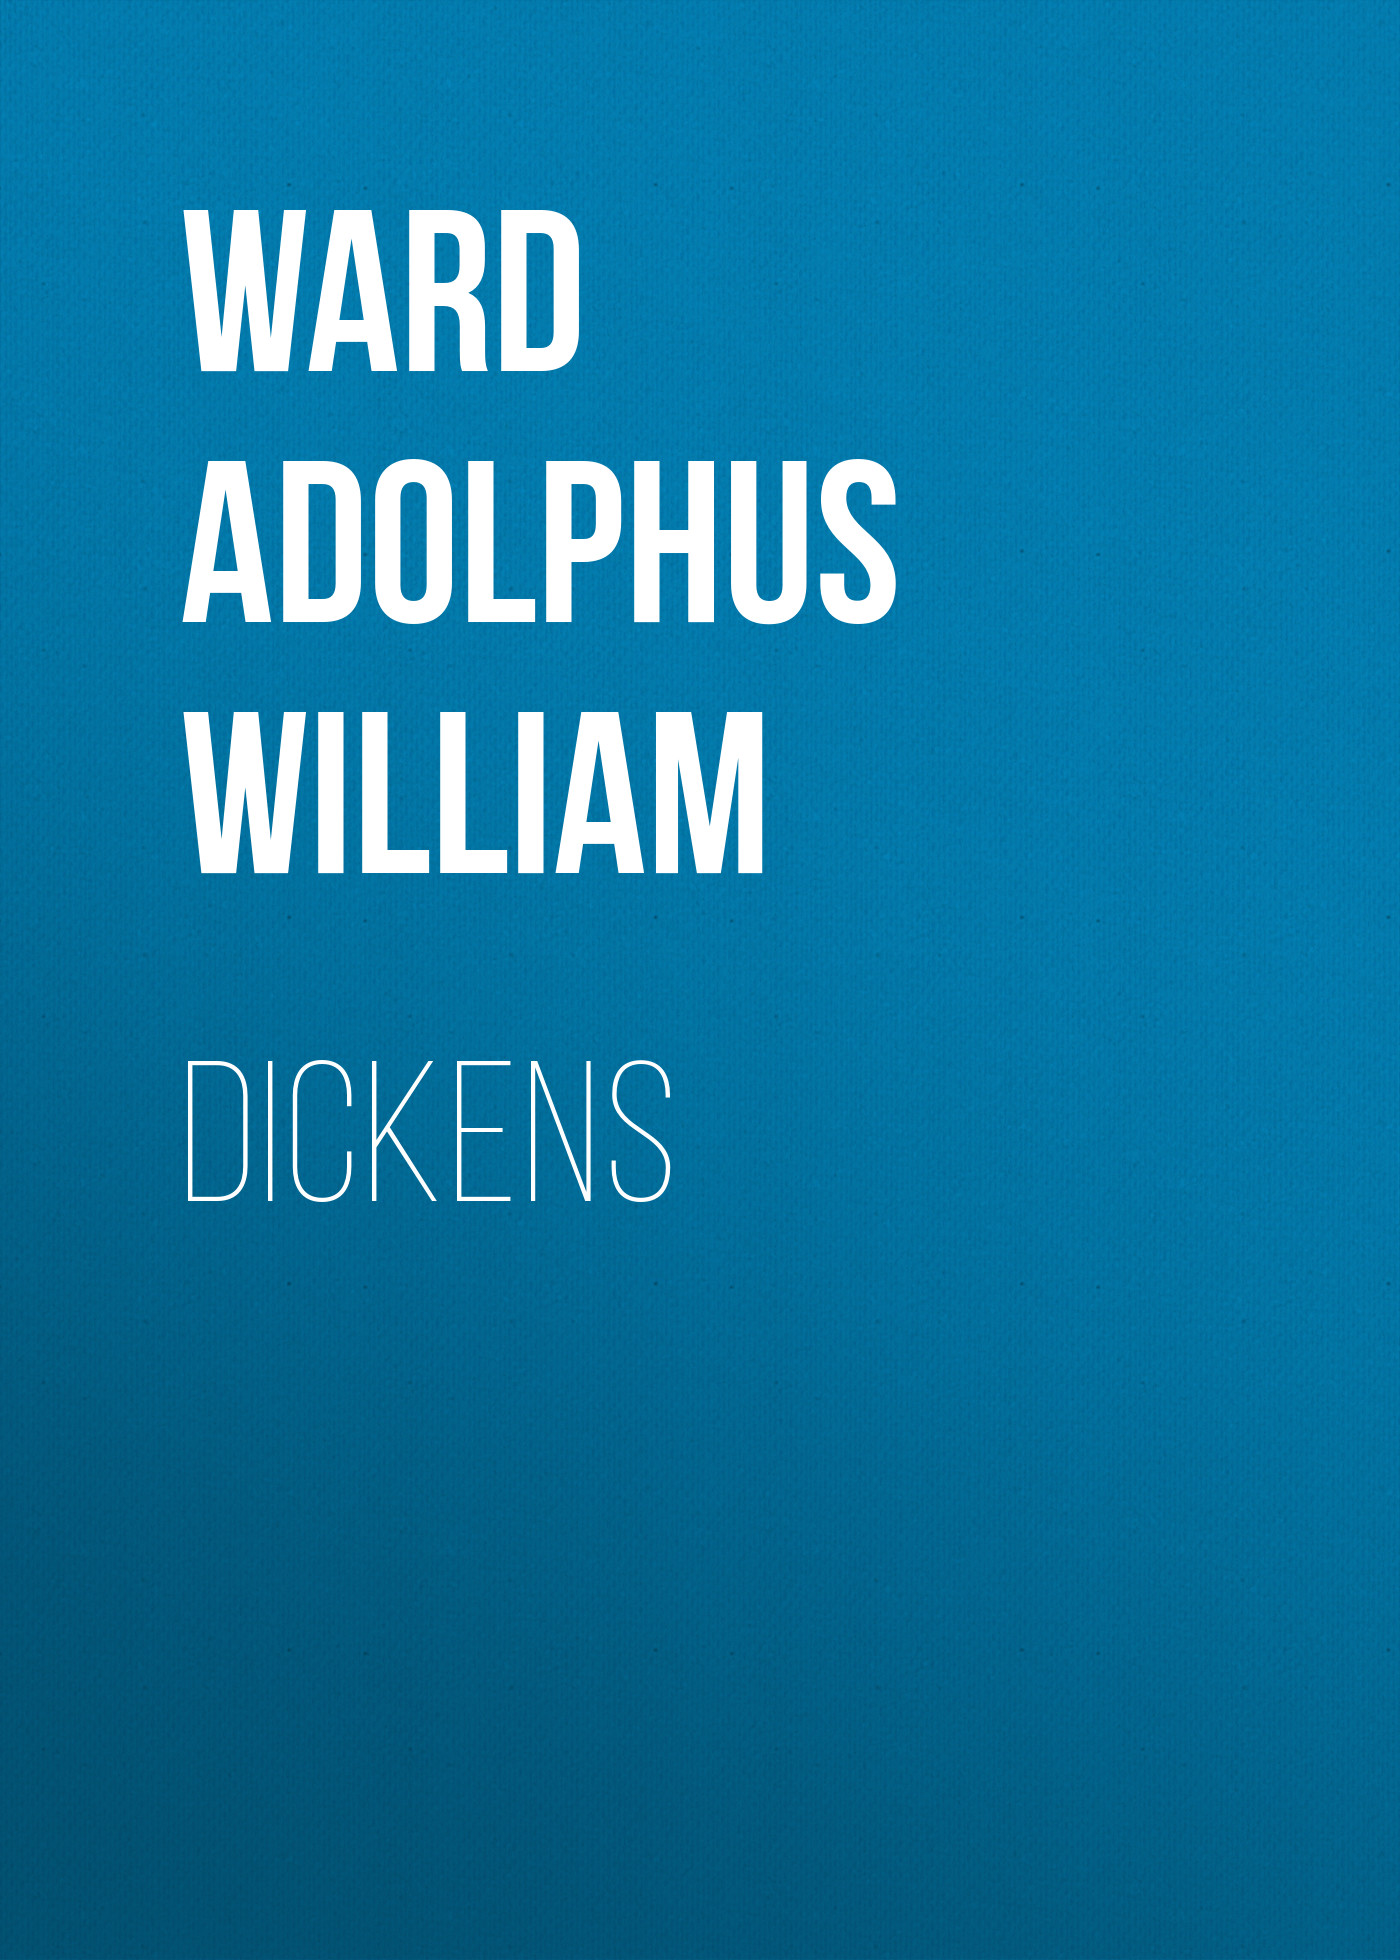 Ward Adolphus William Dickens well ward hochwald 1l 12 19 page 2